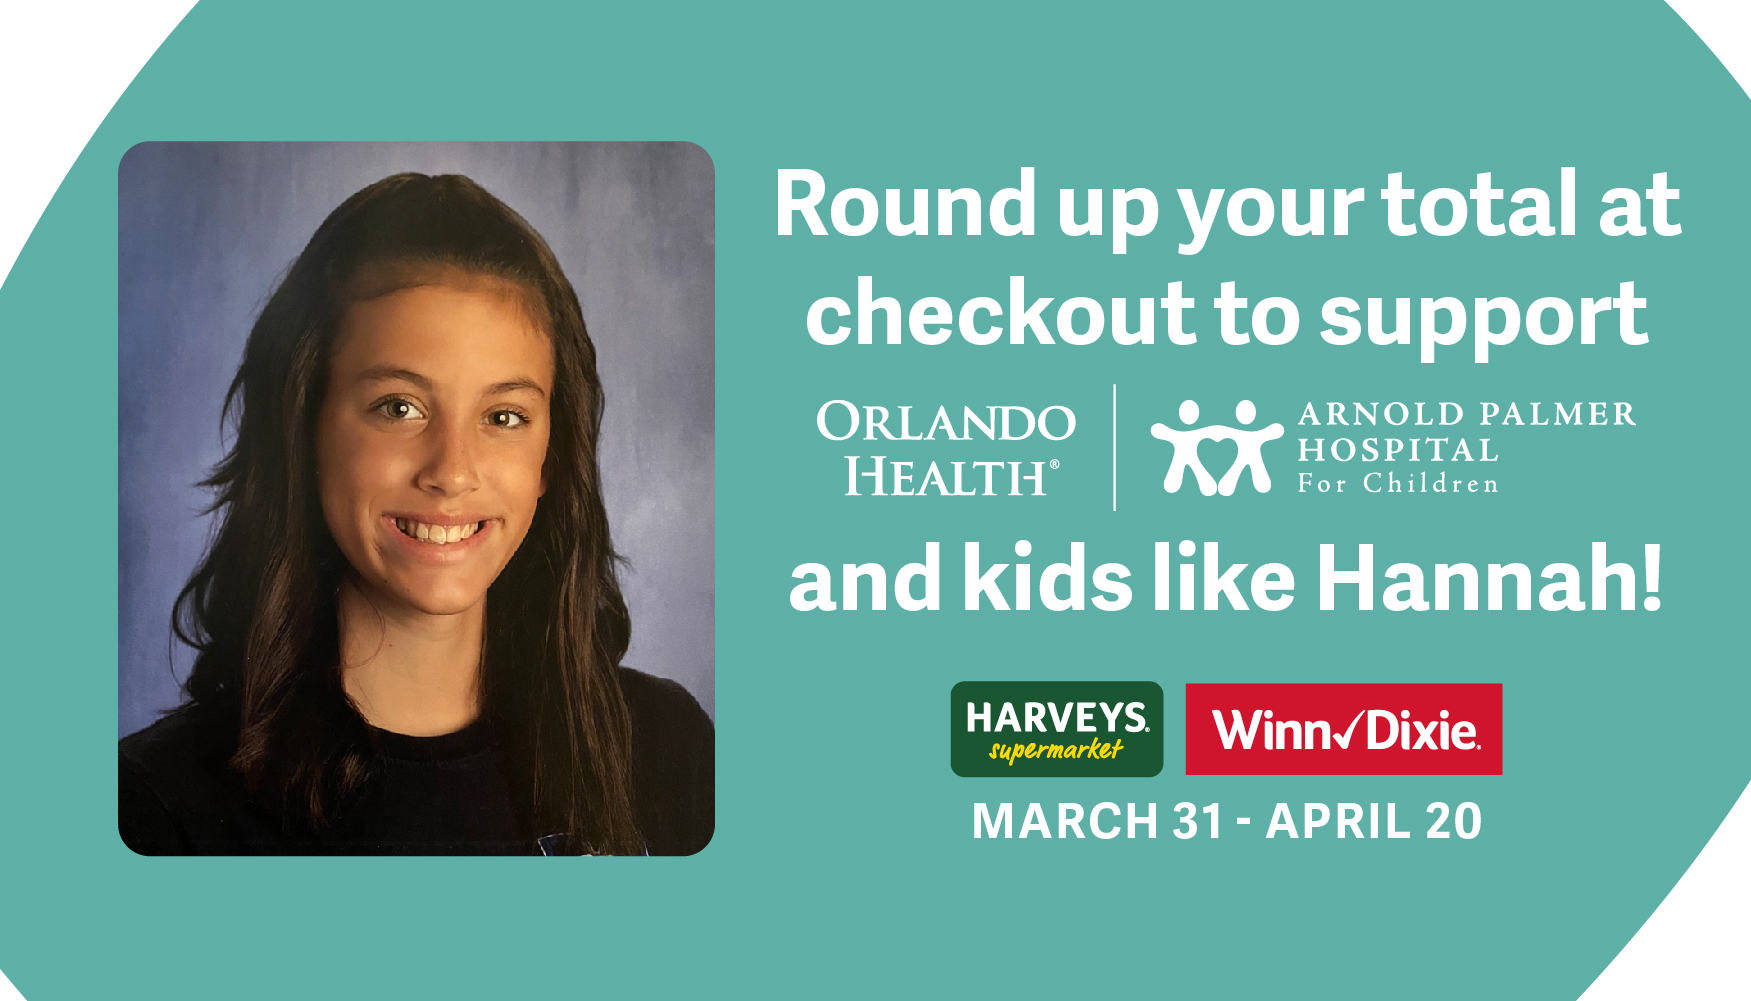 Southeastern Grocers Stores Support Orlando Health Arnold Palmer Hospital for Children - March 31 through April 20, 2021